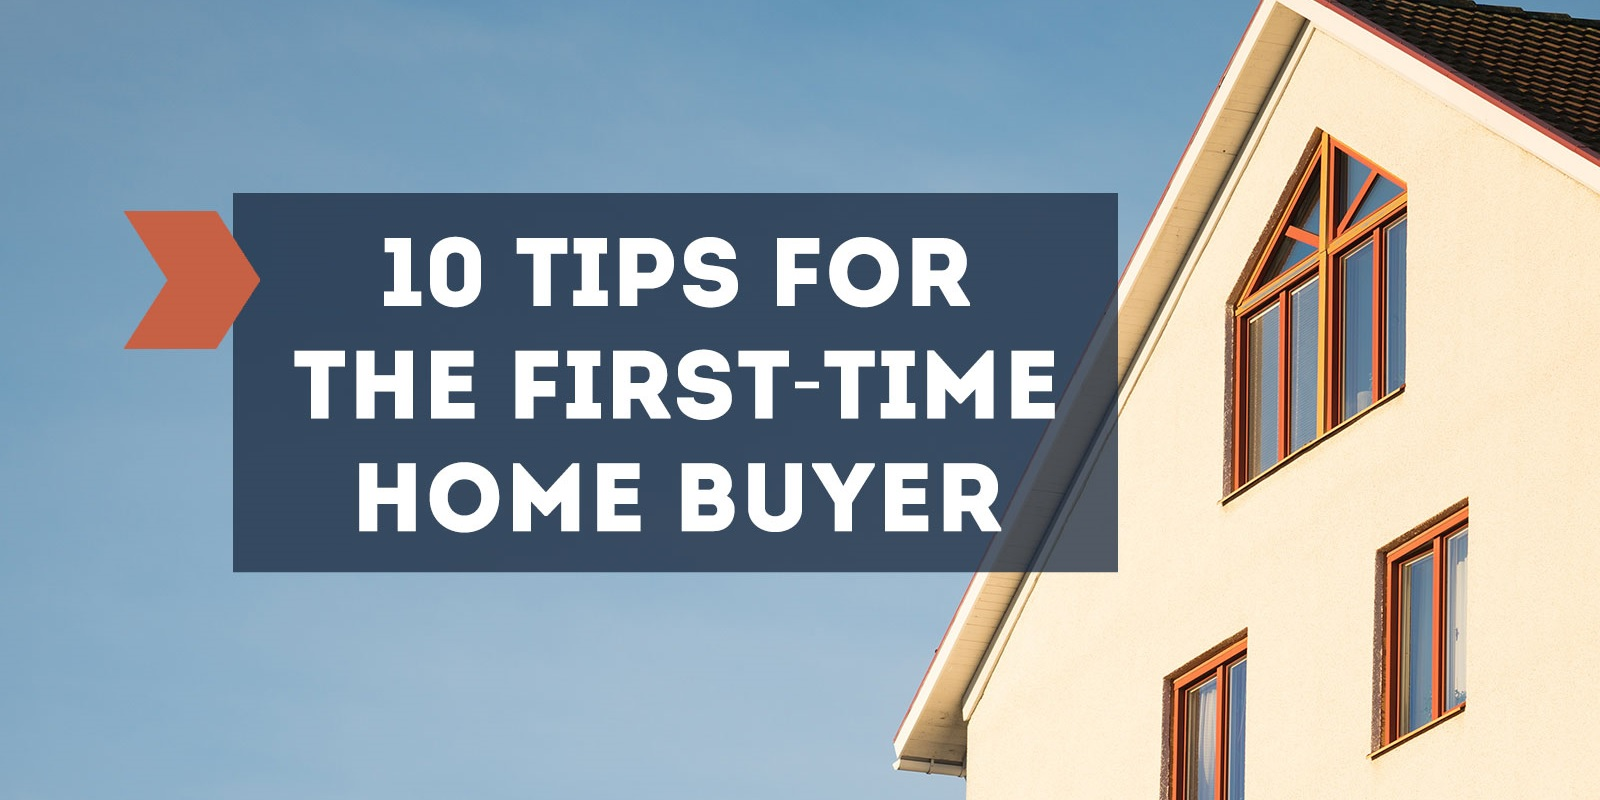 MCCU Advice: 10 Tips For The First-Time Home Buyer – Howie on home business tips, home inspection tips, home owners tips, home selling tips, home staging tips, home seller tips,